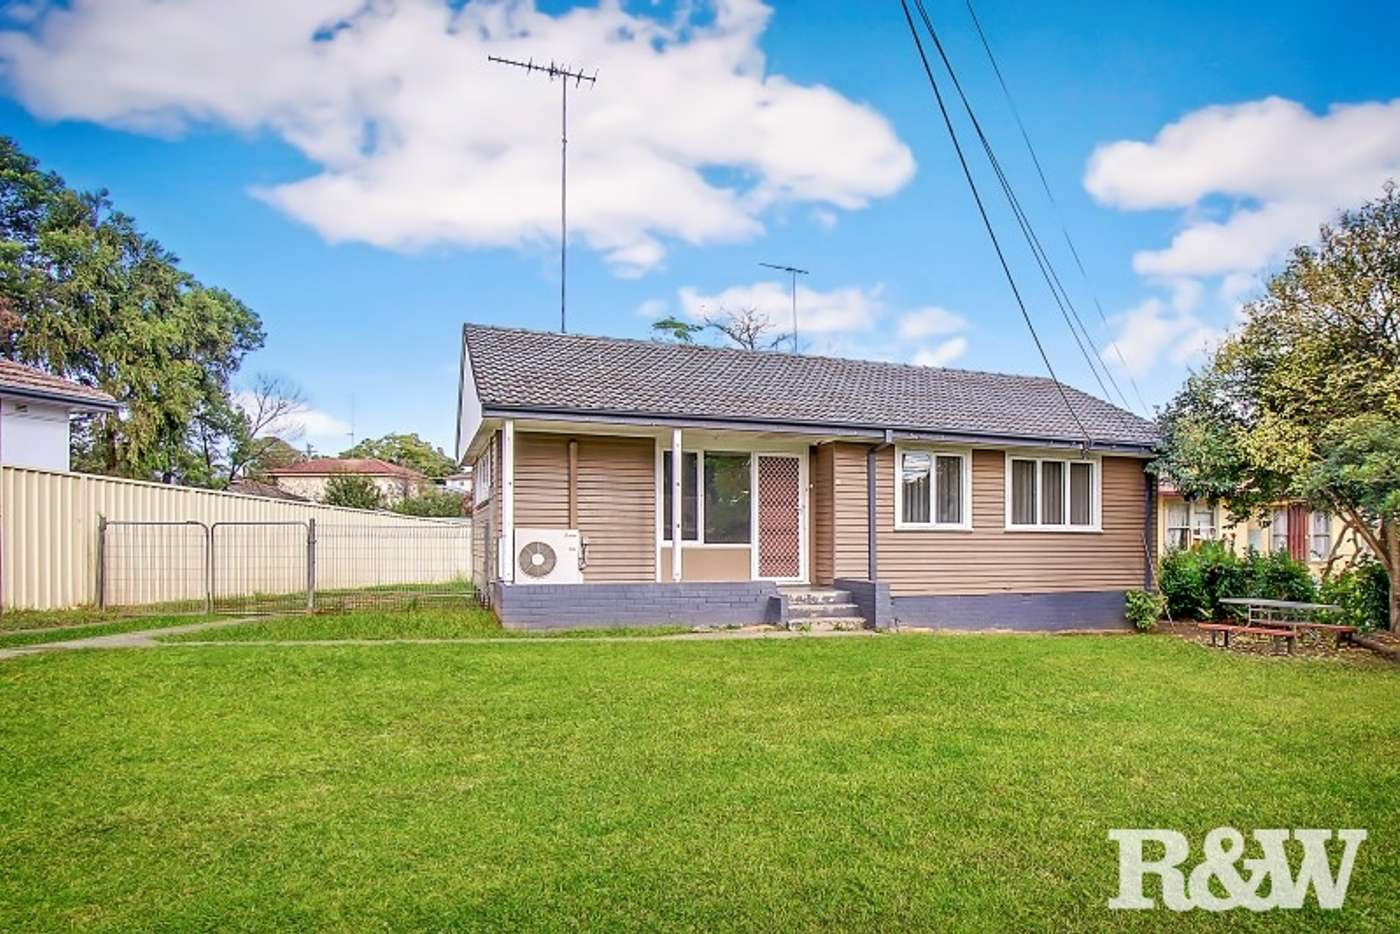 Main view of Homely house listing, 42 Kista Dan Avenue, Tregear NSW 2770